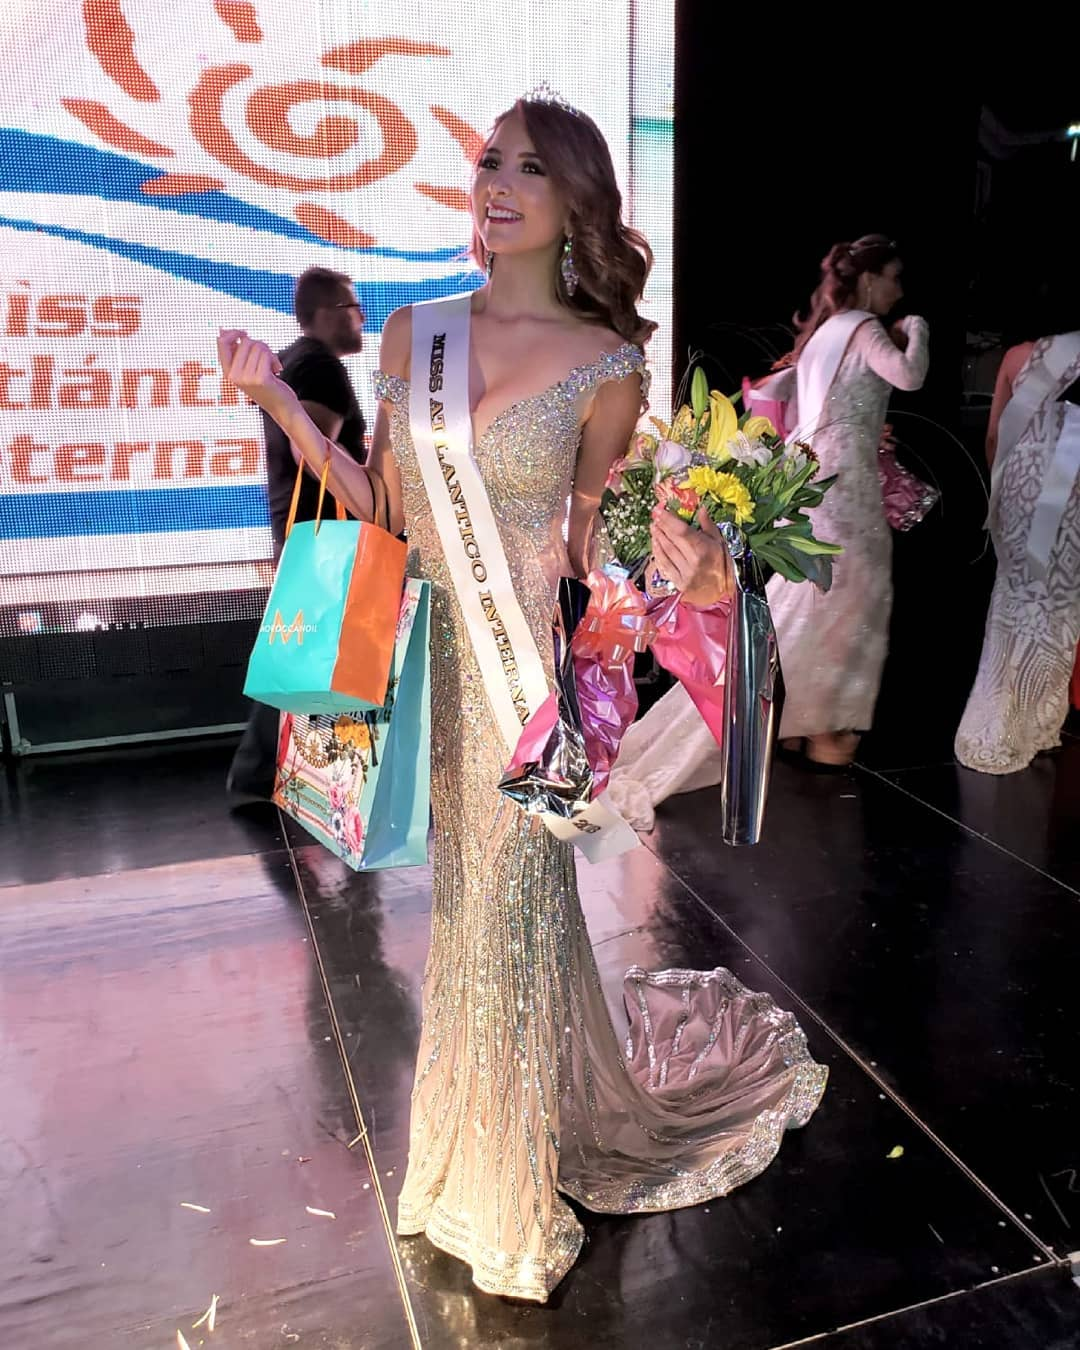 estefania olcese, miss atlantico international 2018. Cpscms10